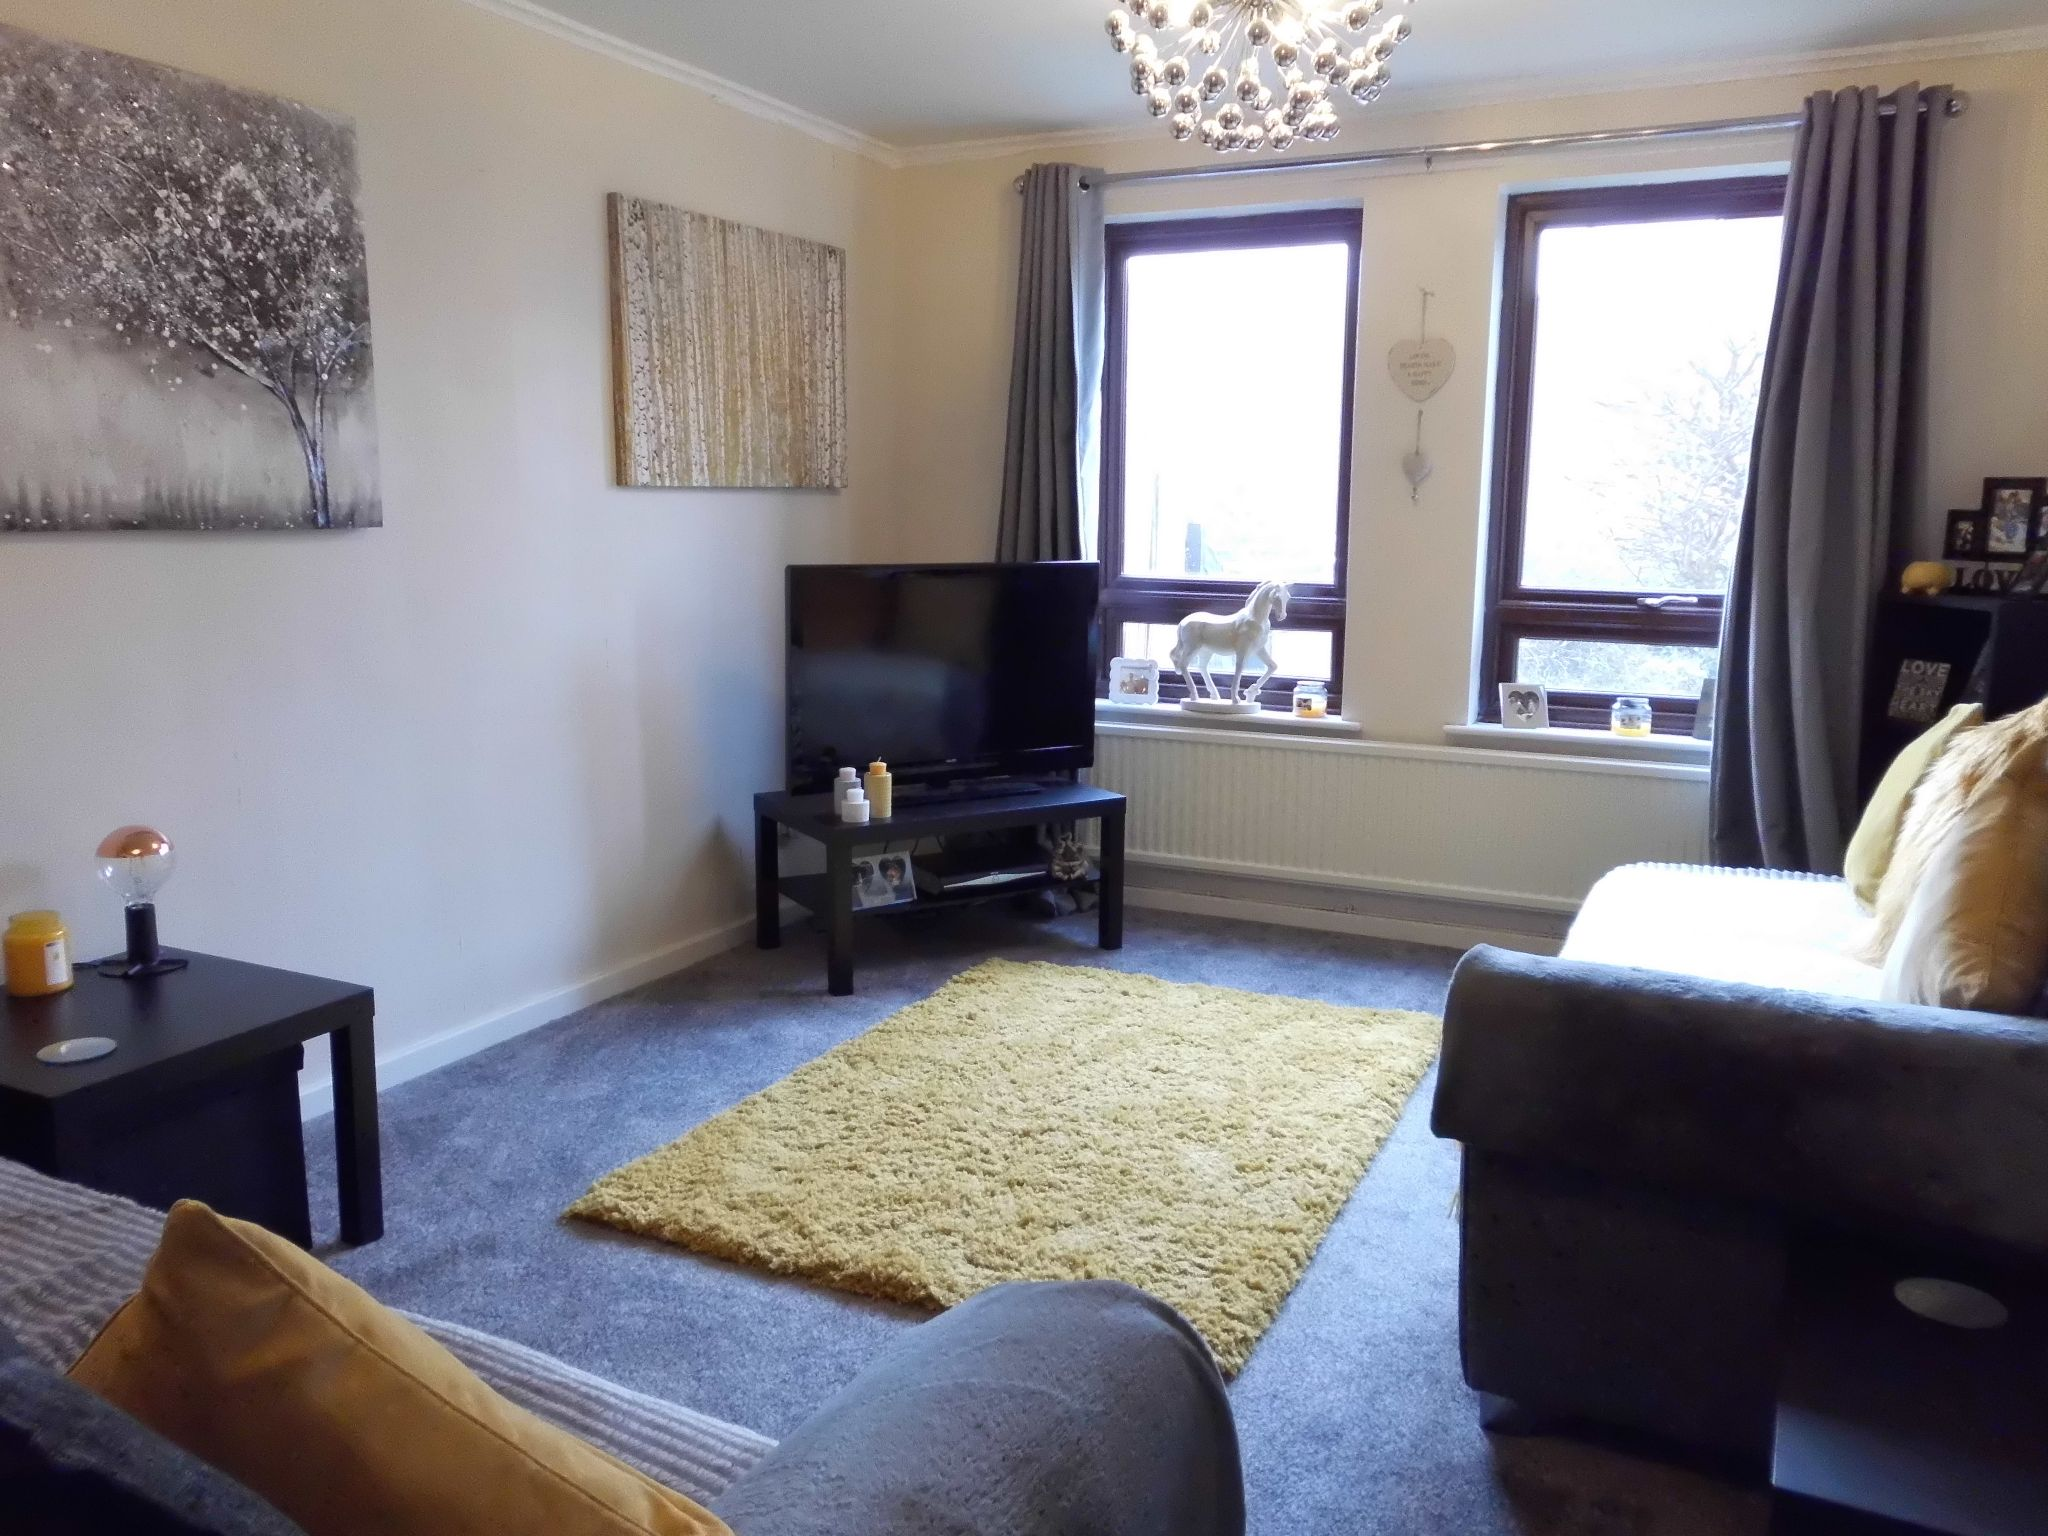 3 bedroom town house For Sale in Leicester - Photograph 3.